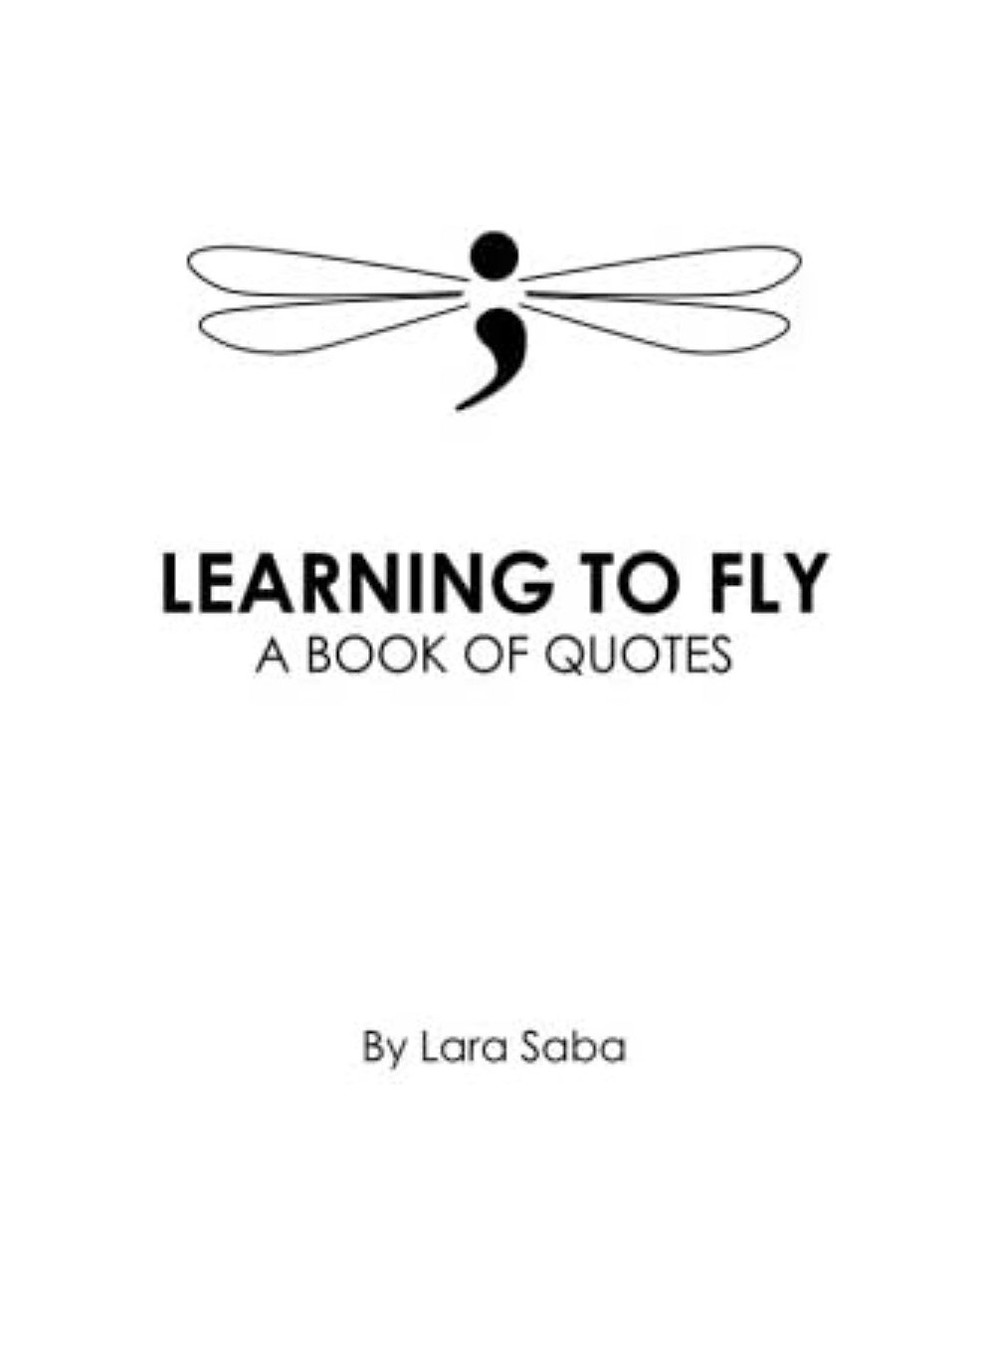 Learning to Fly: A Book of Quotes by Lara Saba